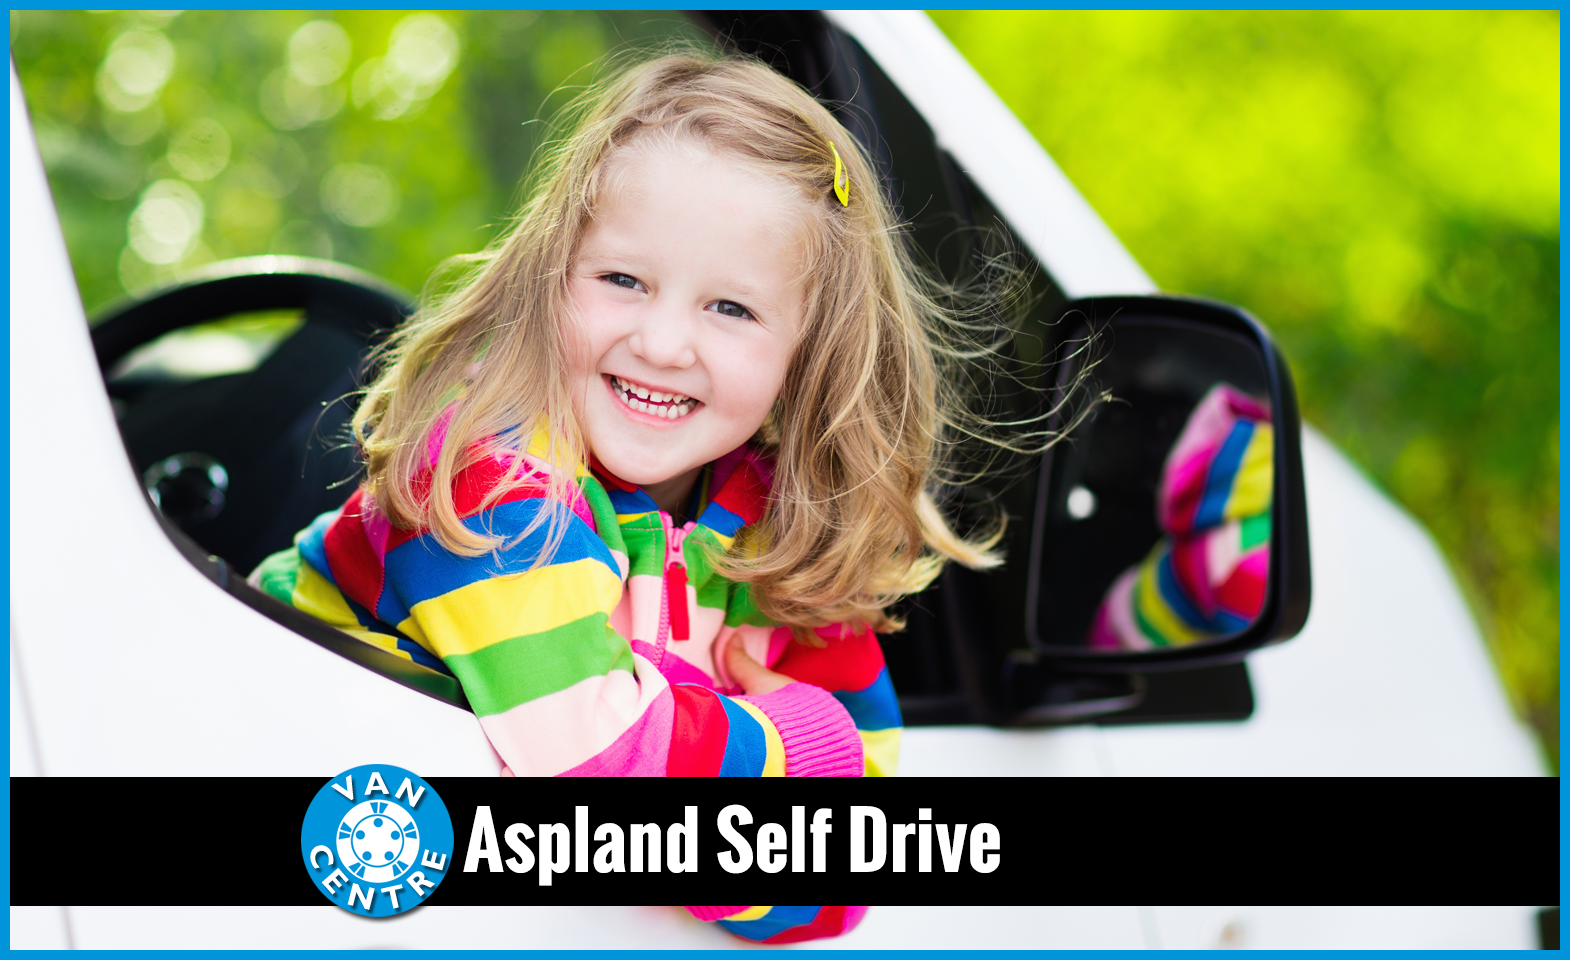 Hire a minibus for a fun family weekend! | Aspland Self Drive, Norwich